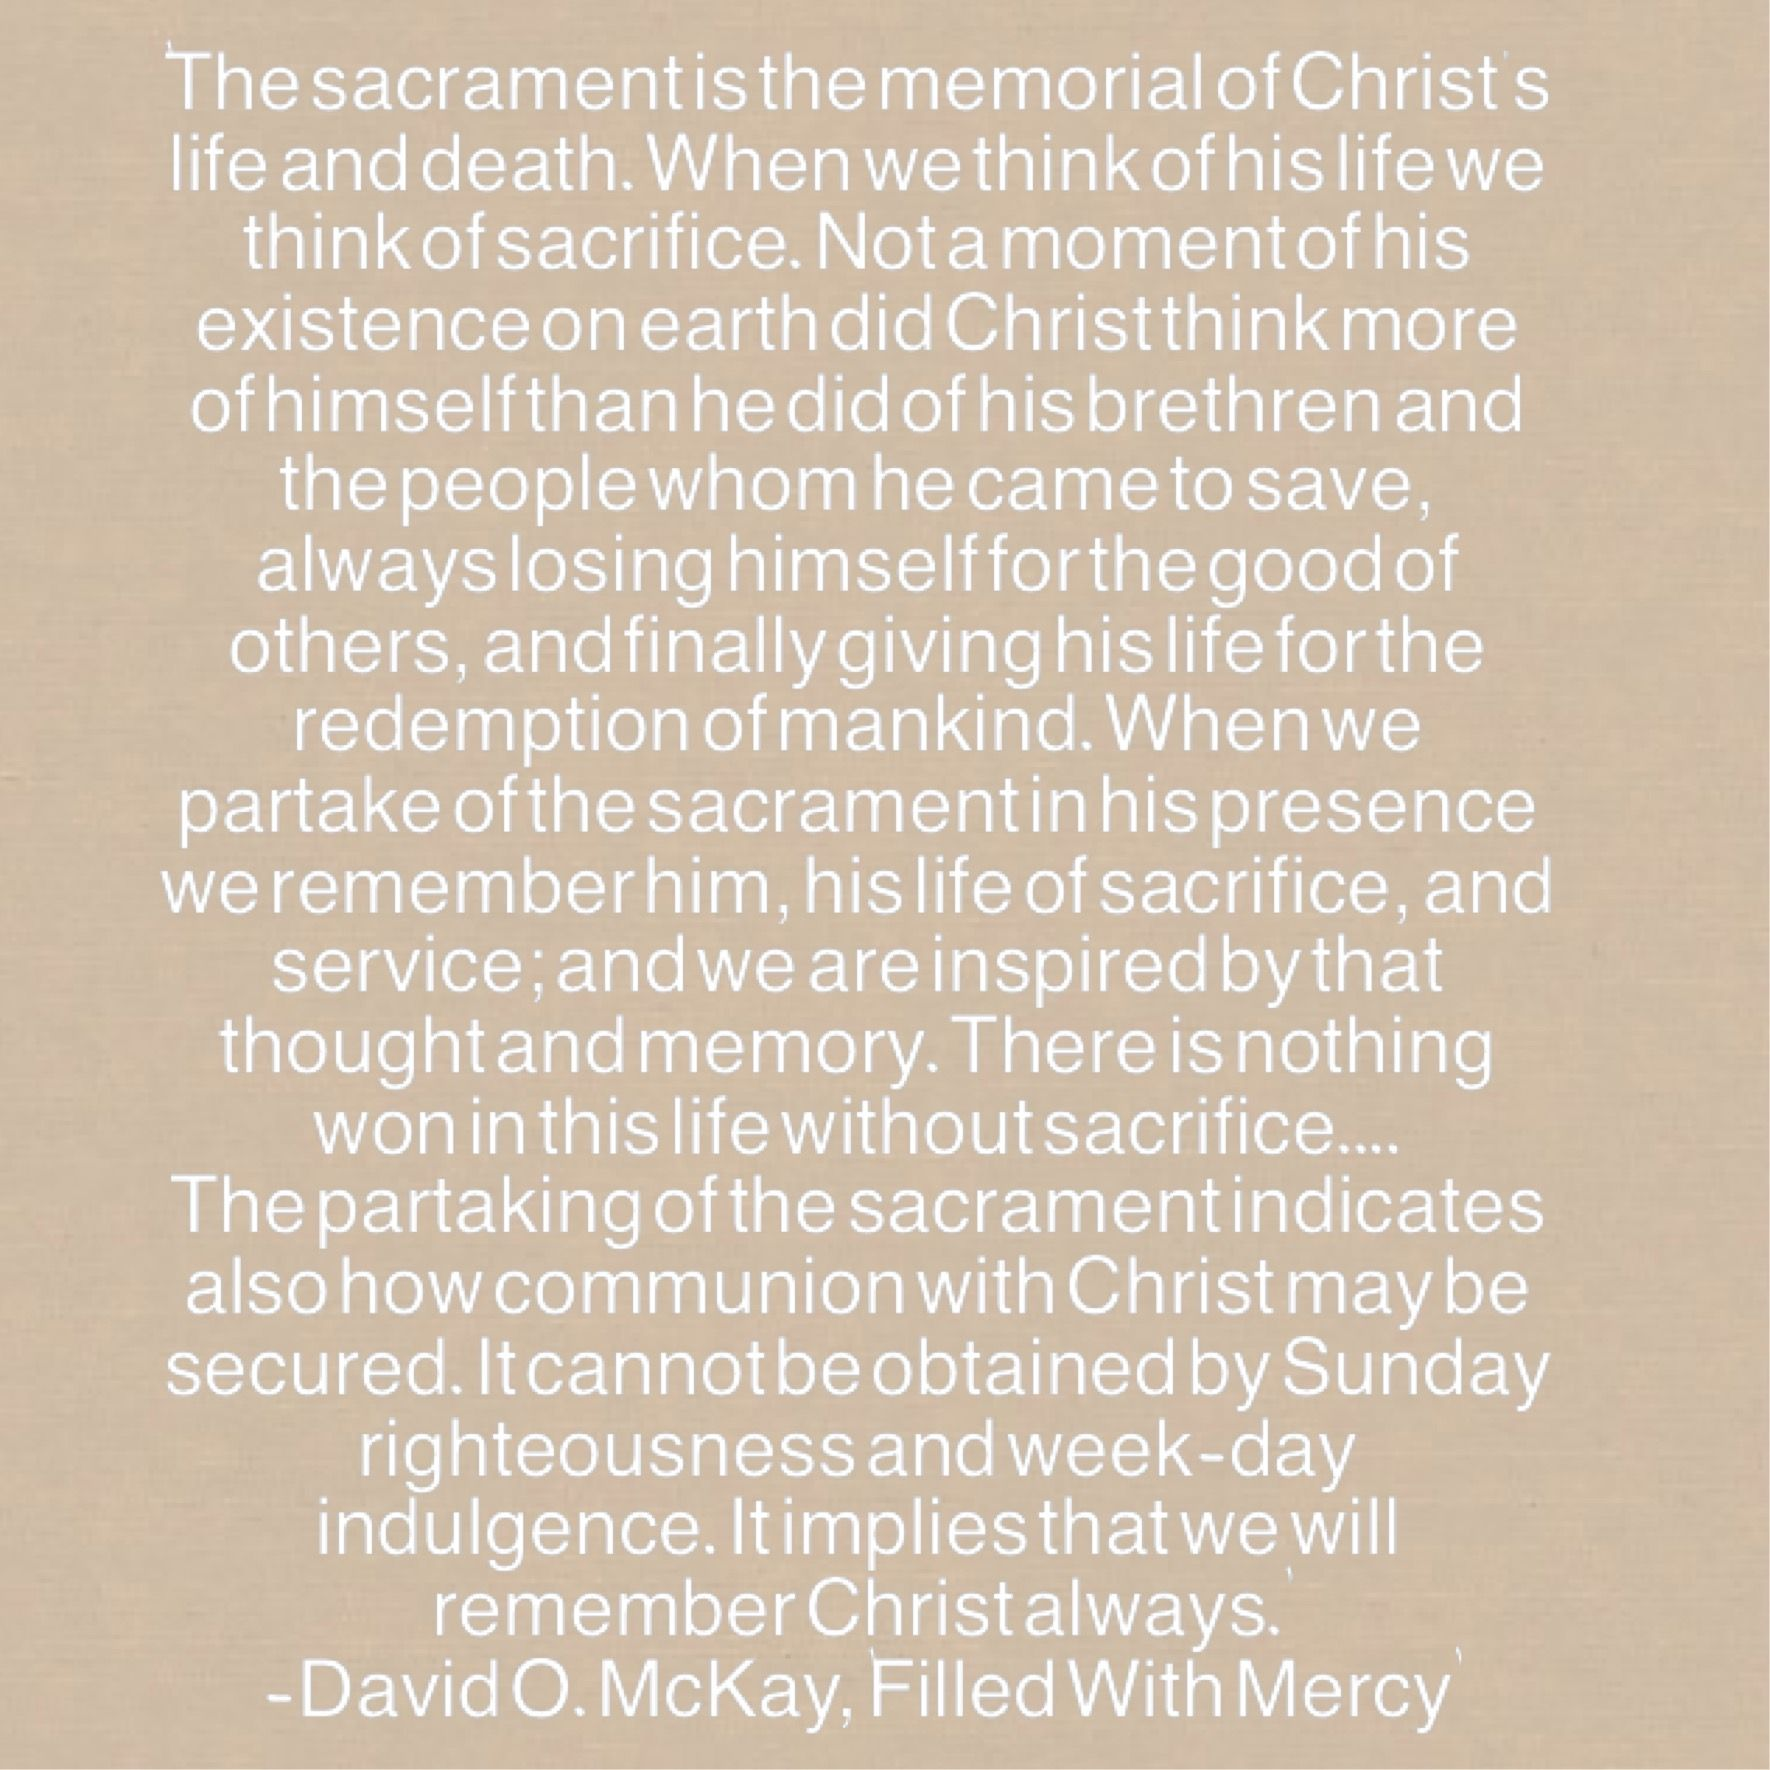 """April 8-David O. McKay, """"Filled With Mercy"""""""